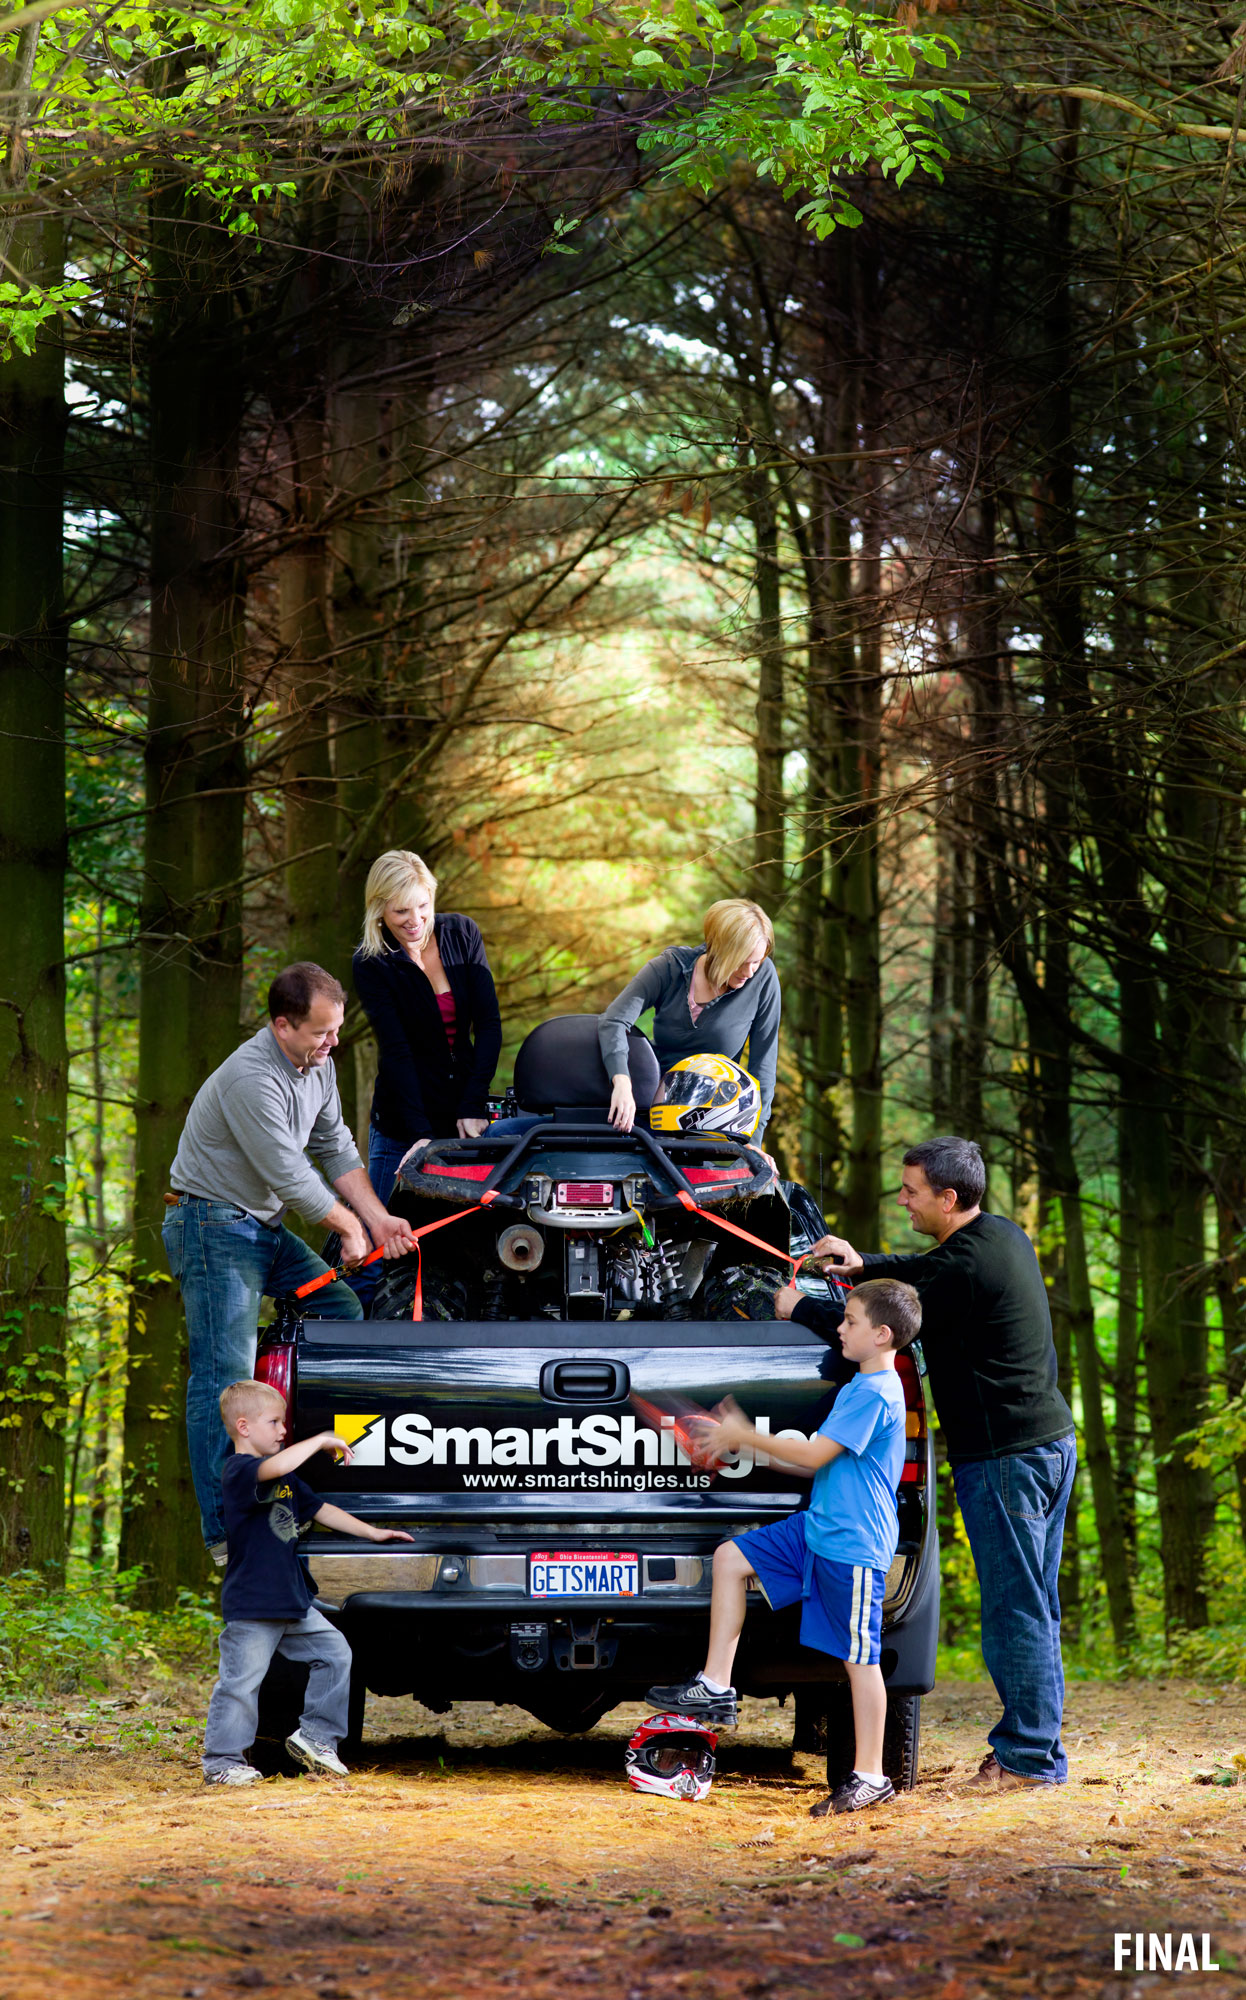 professional composite imagery photo of family with truck and 4 wheeler